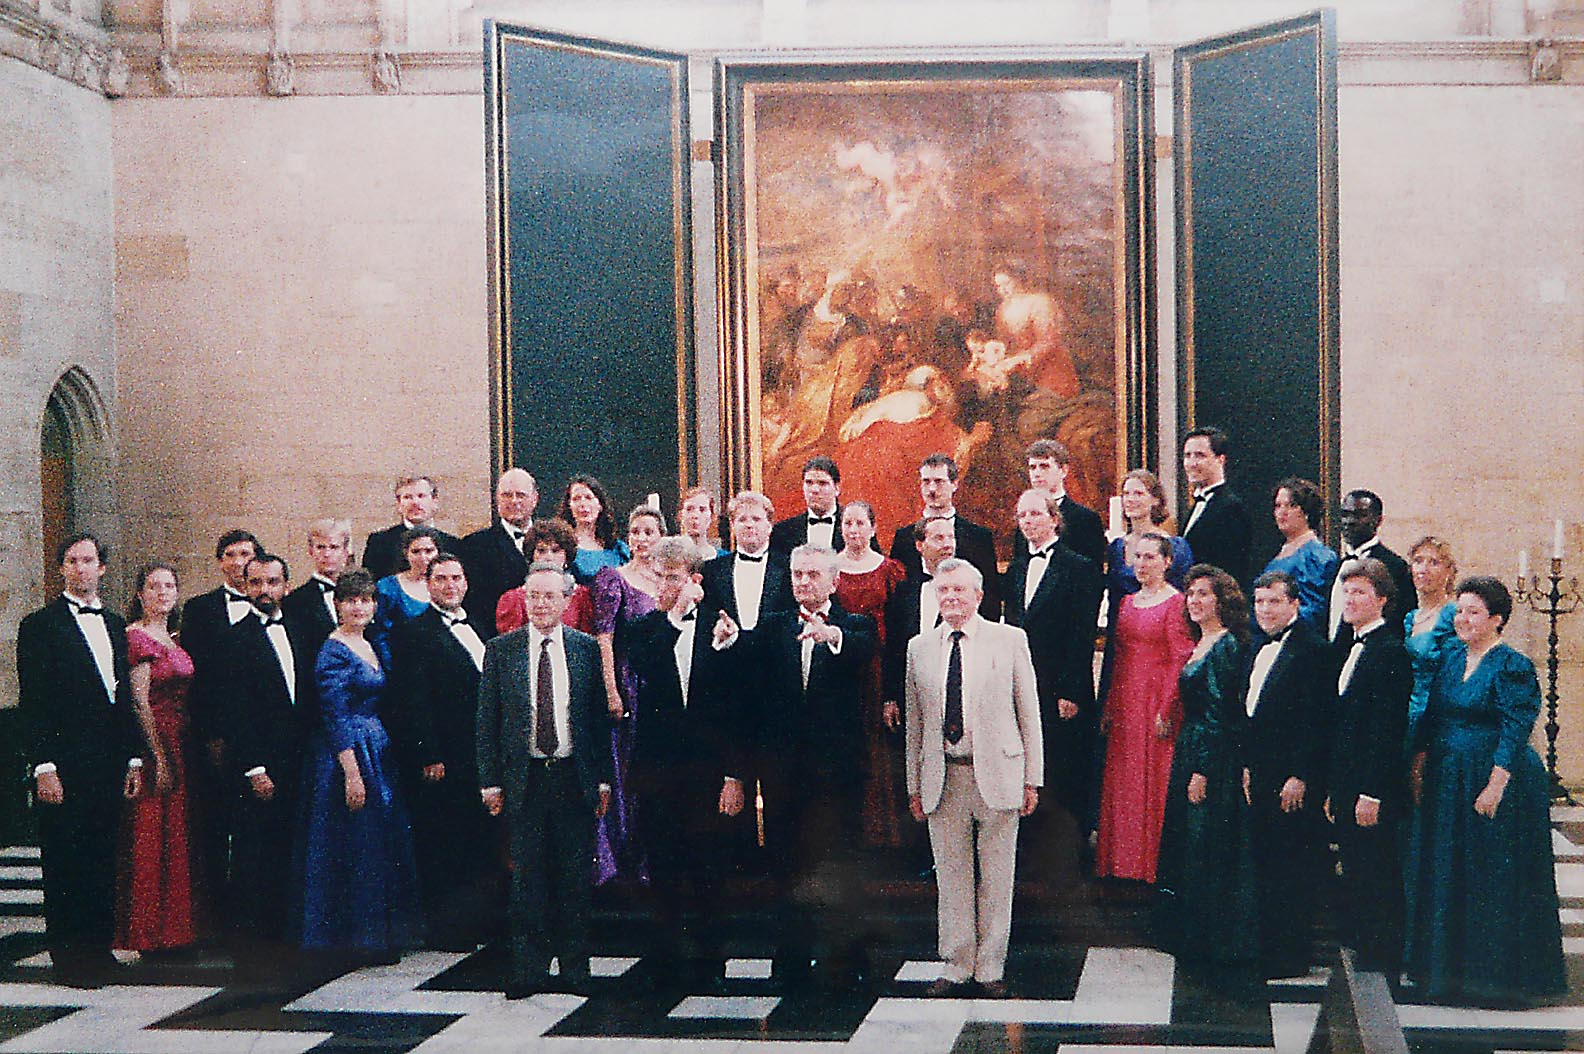 Princeton_Singers_Kings_27_Aug_1996.jpg